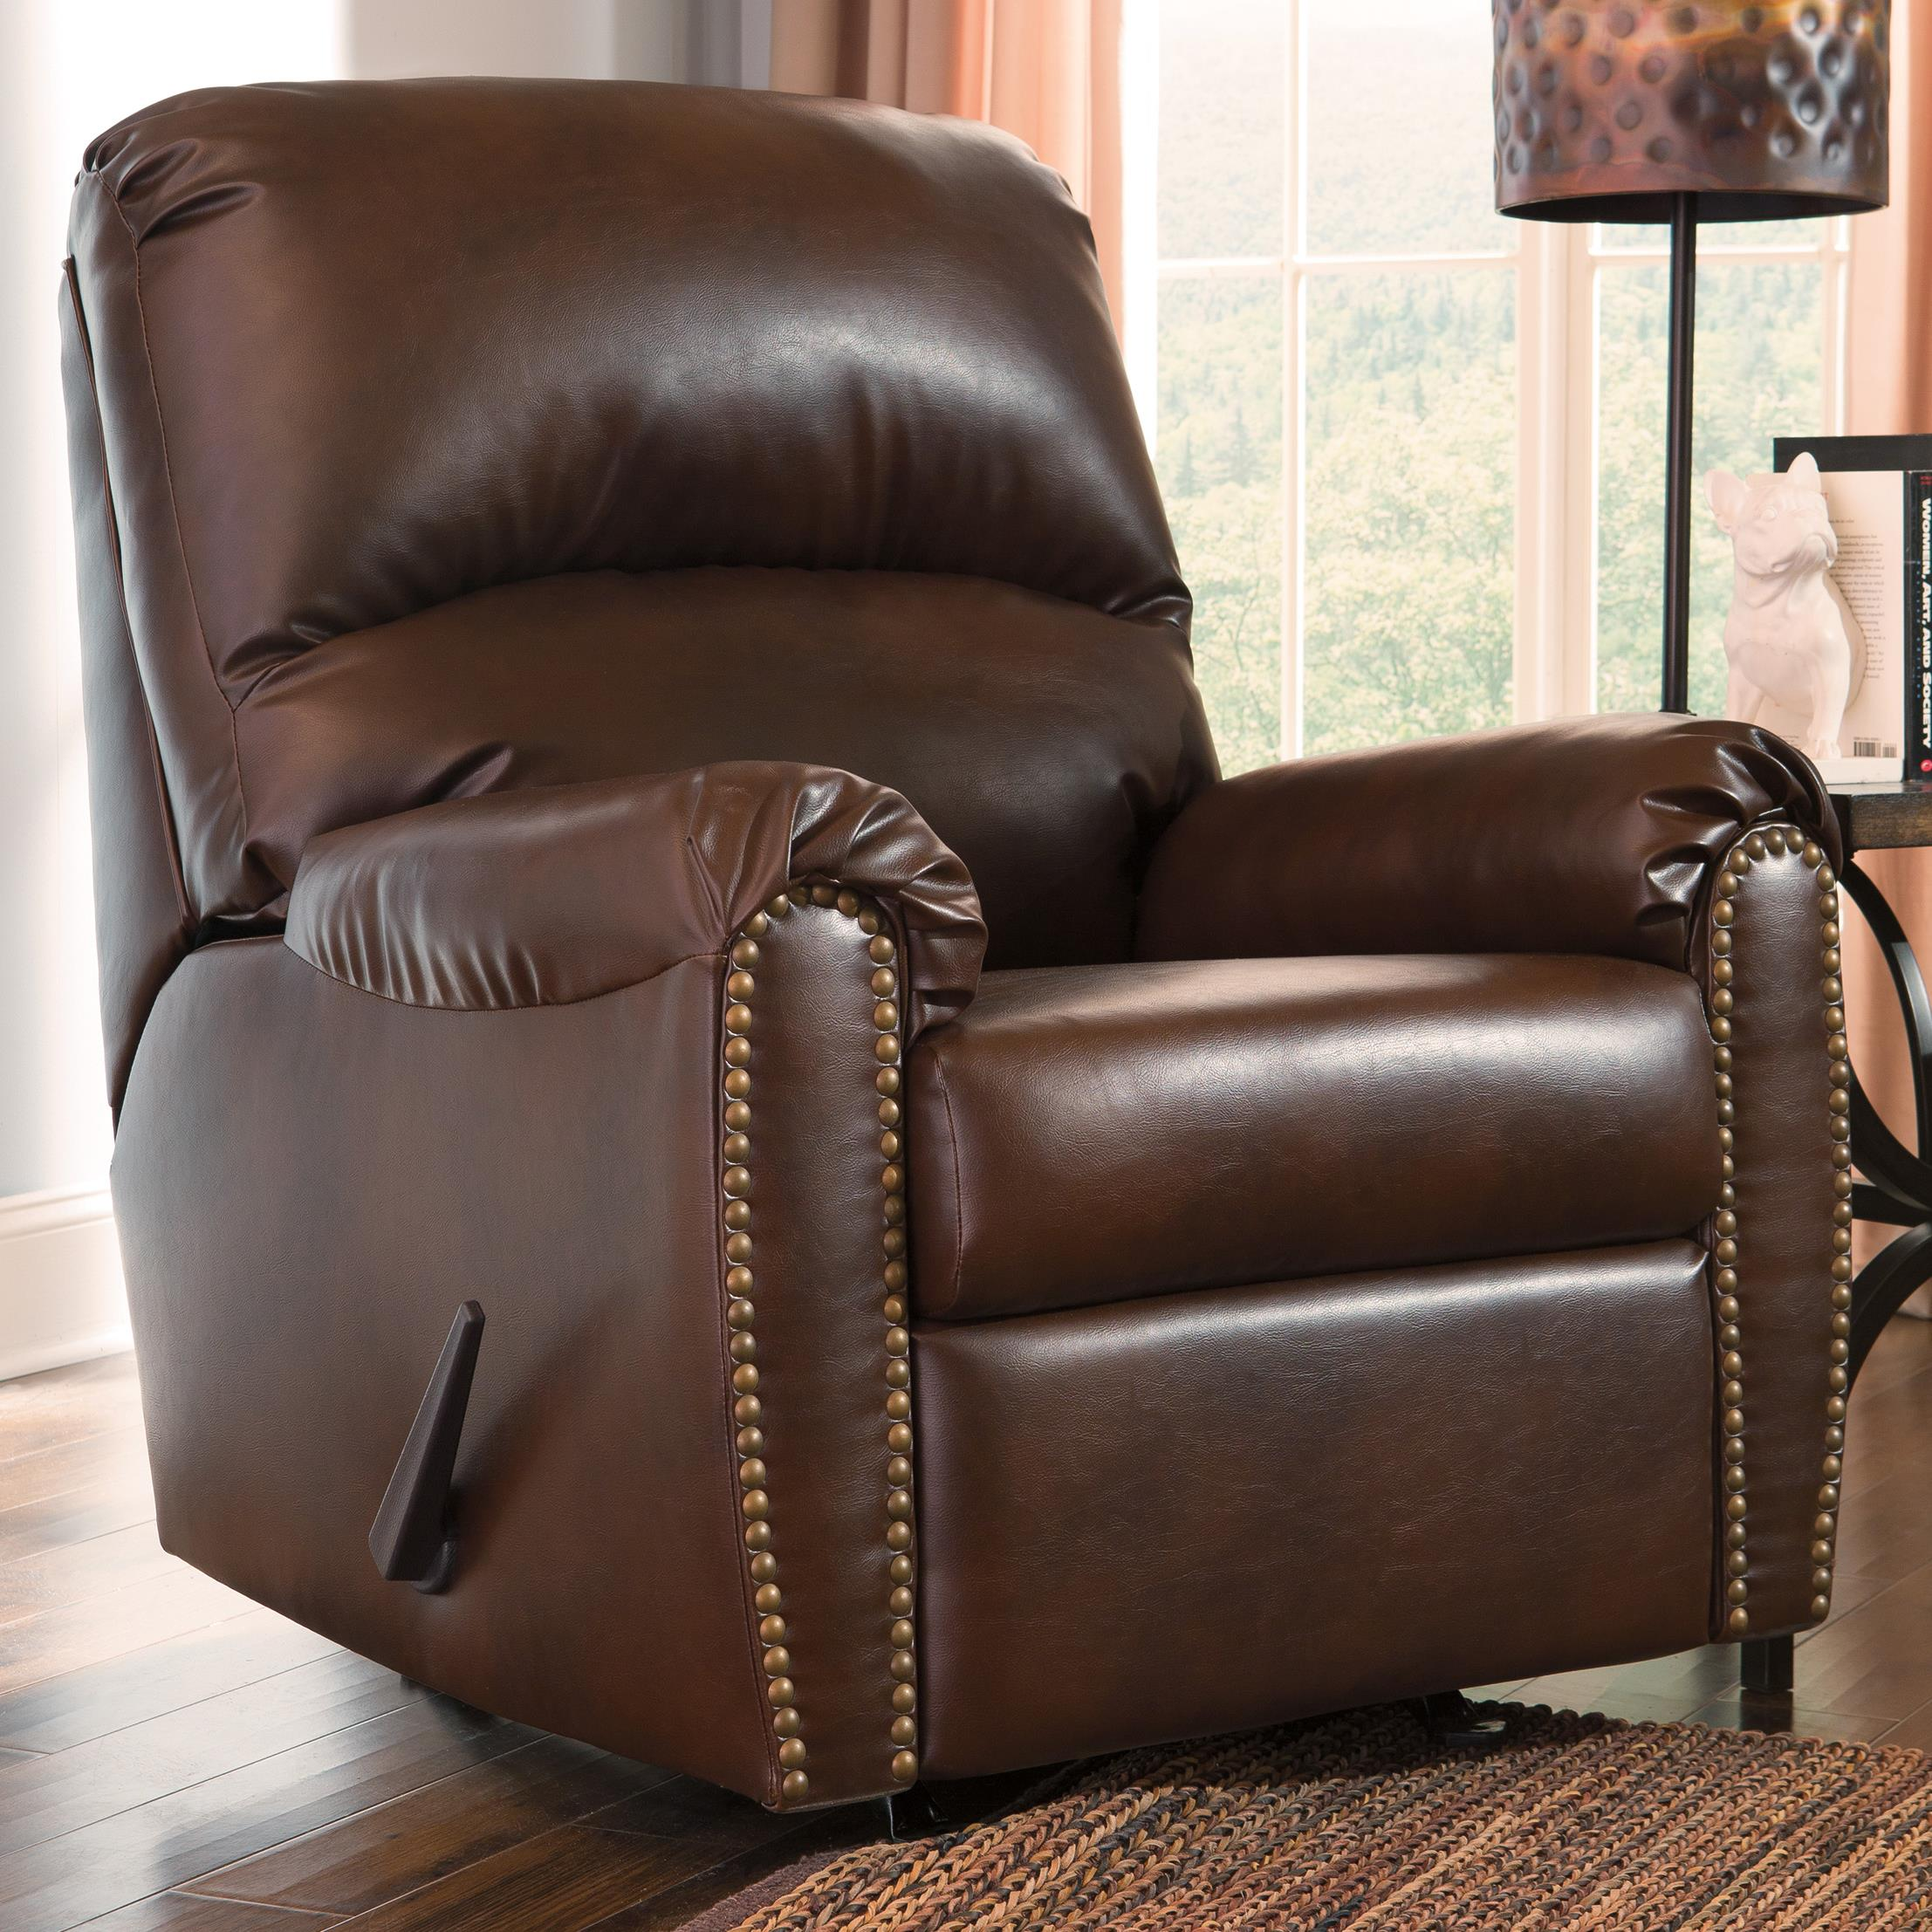 Signature Design by Ashley Lottie DuraBlend® Rocker Recliner - Item Number: 3800025